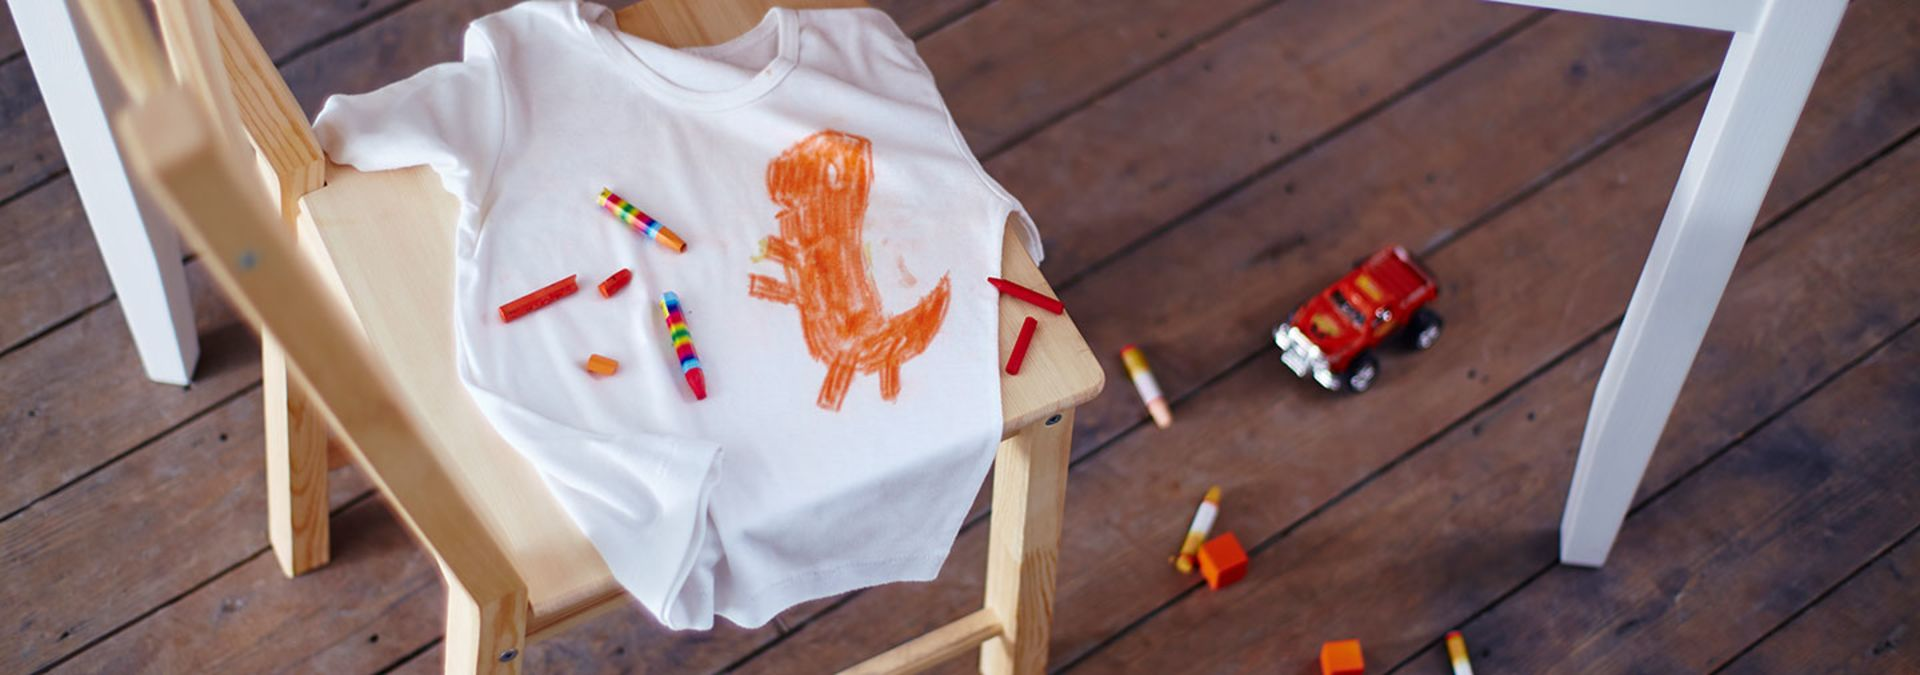 Crayon drawing on white t-shirt